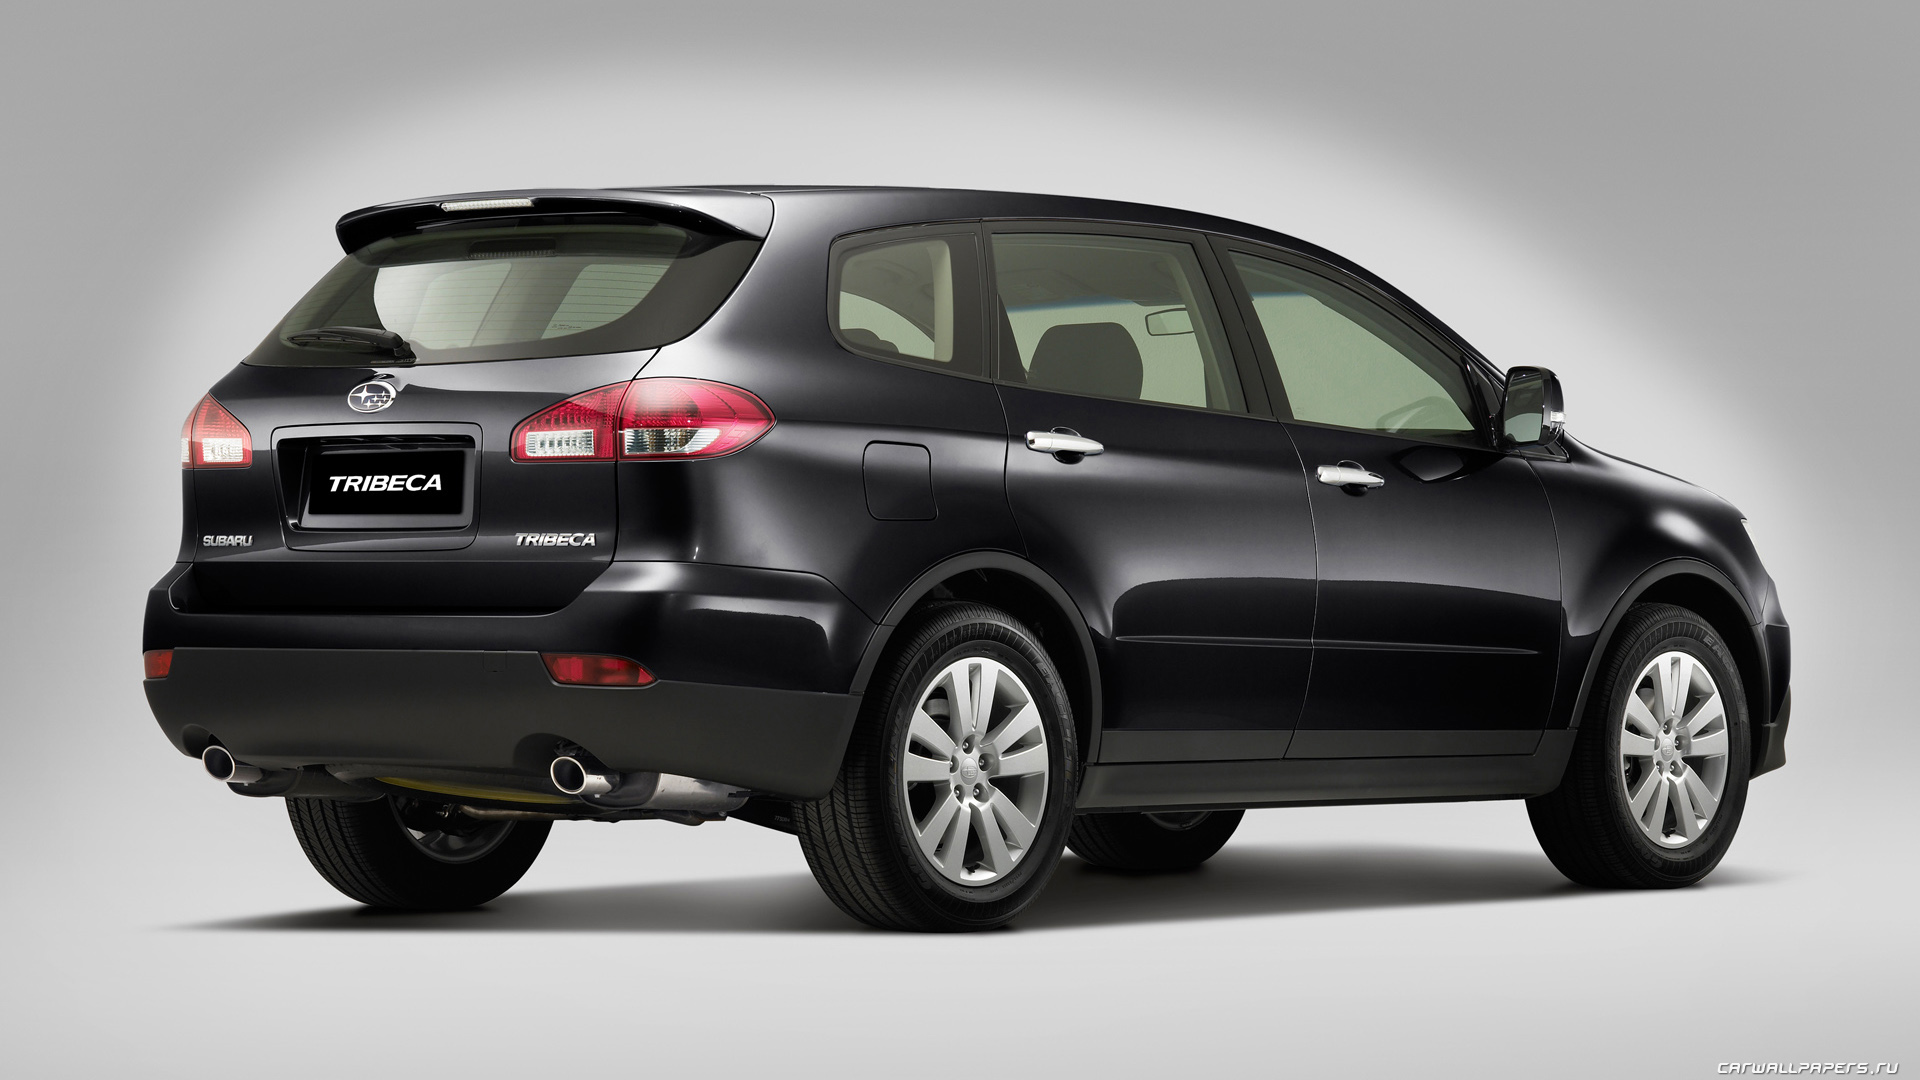 2008 subaru tribeca pictures information and specs. Black Bedroom Furniture Sets. Home Design Ideas